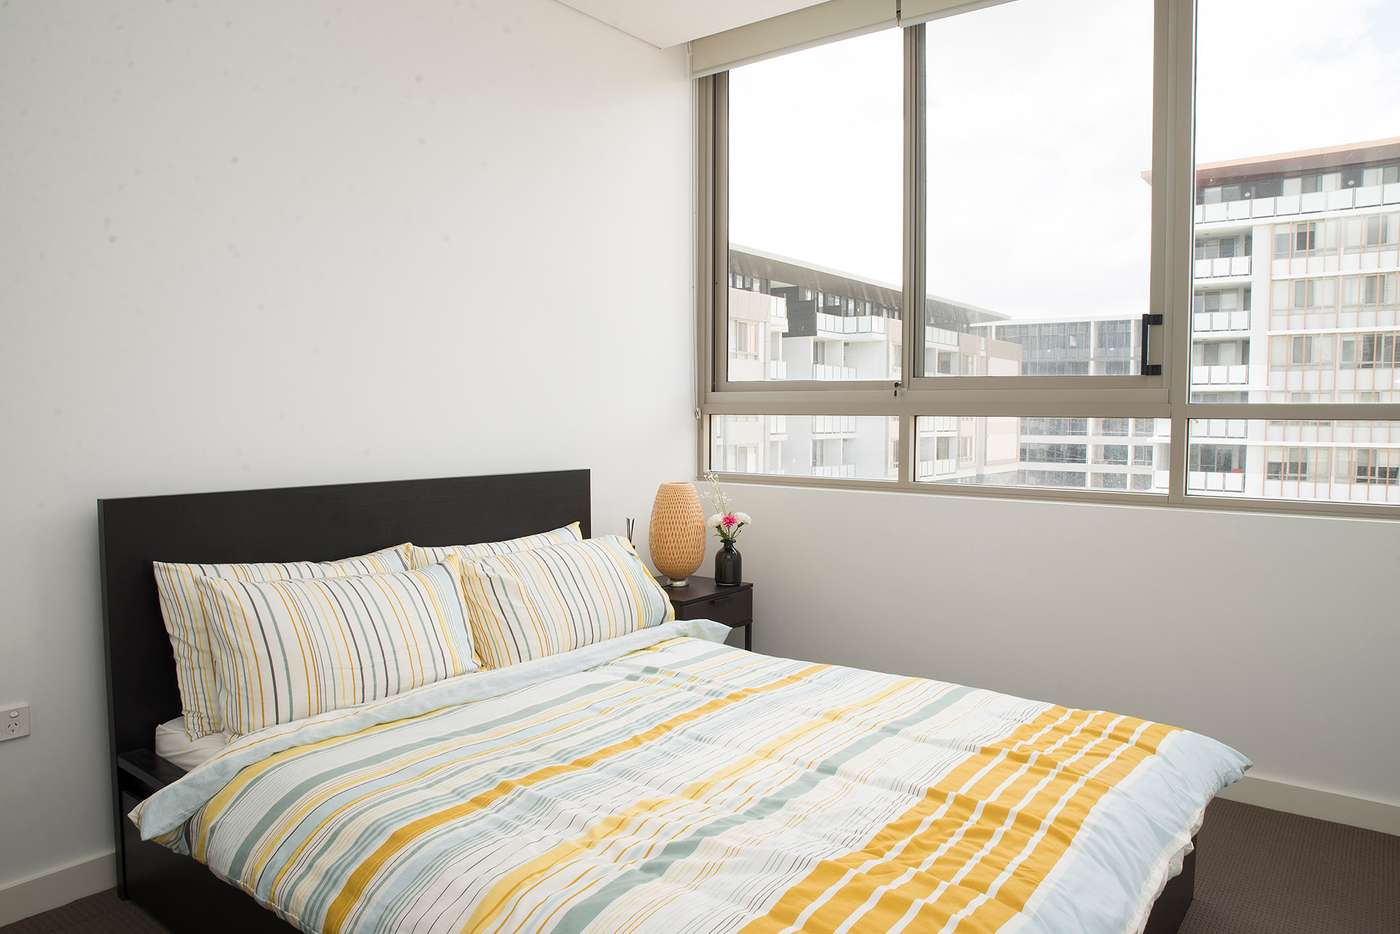 Sixth view of Homely apartment listing, 3208/1A Morton Street, Parramatta NSW 2150